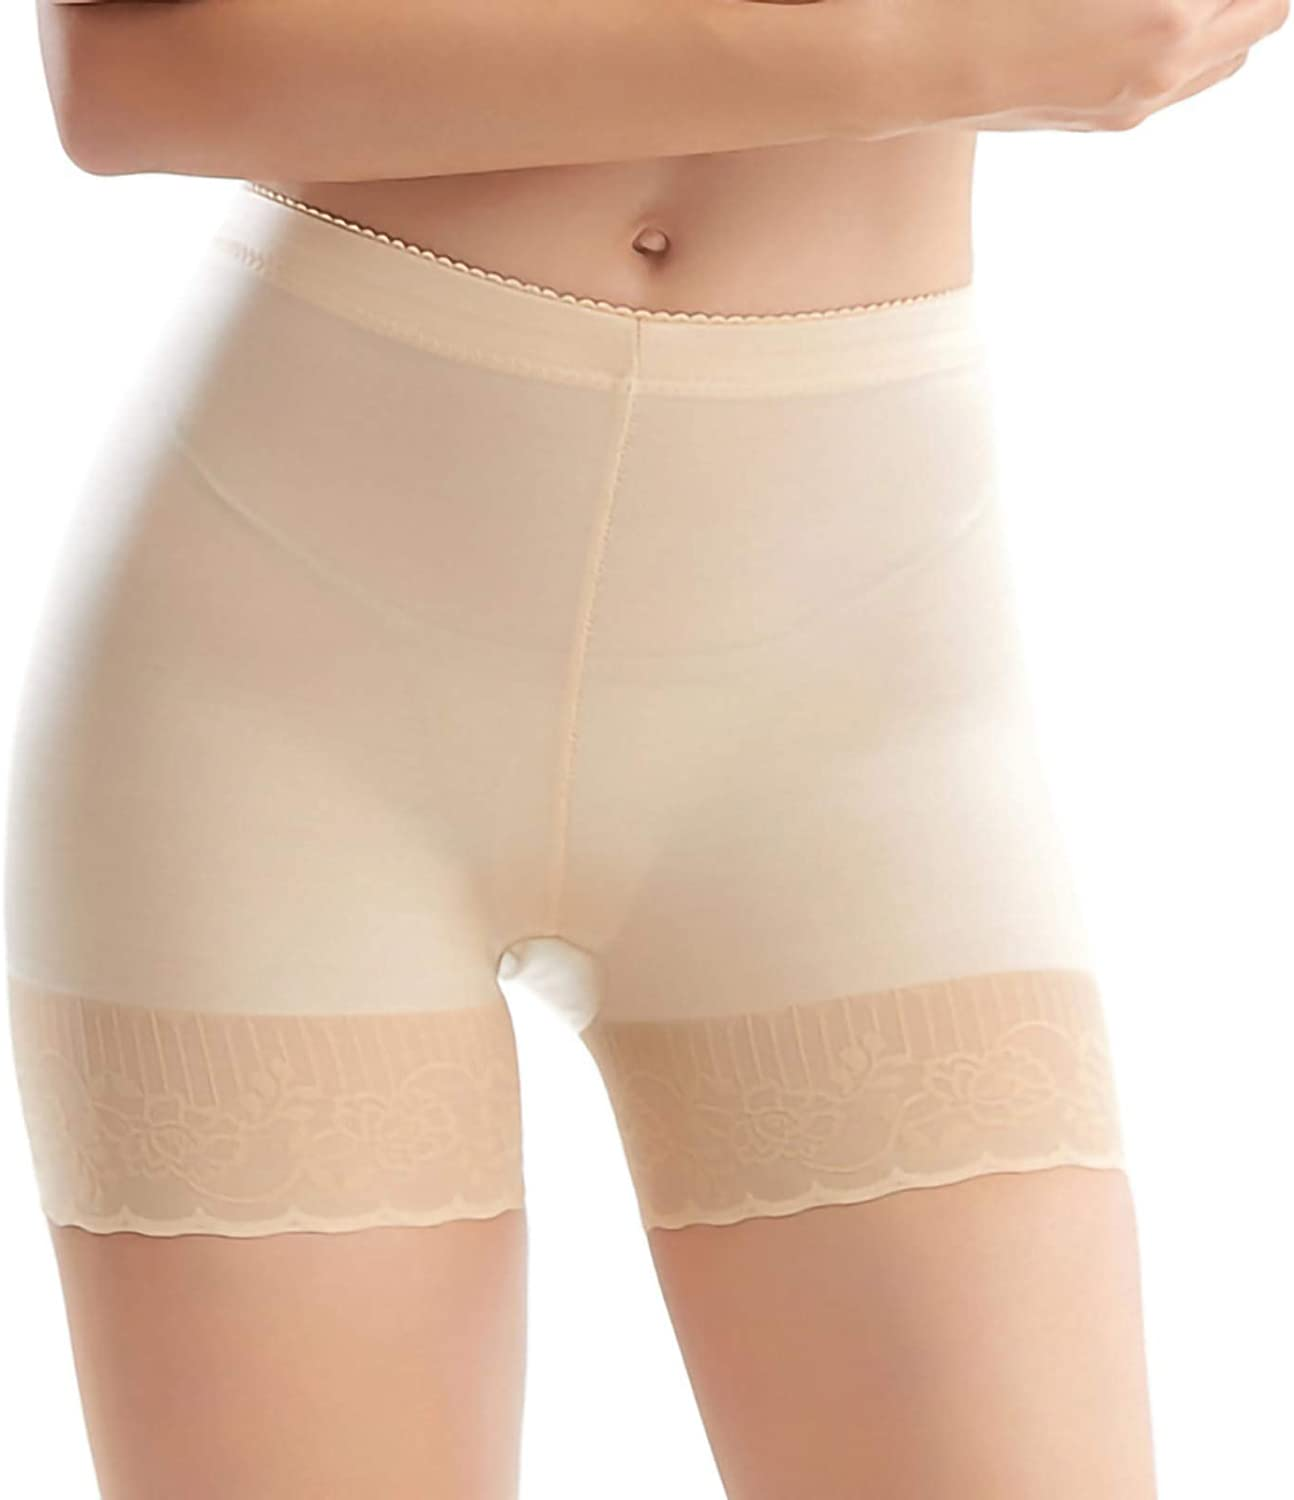 xoxing 1PC Women High Waisted Breech Buttock Raising Shaping Panties Breathable Plus Size Sexy Underpants(B)